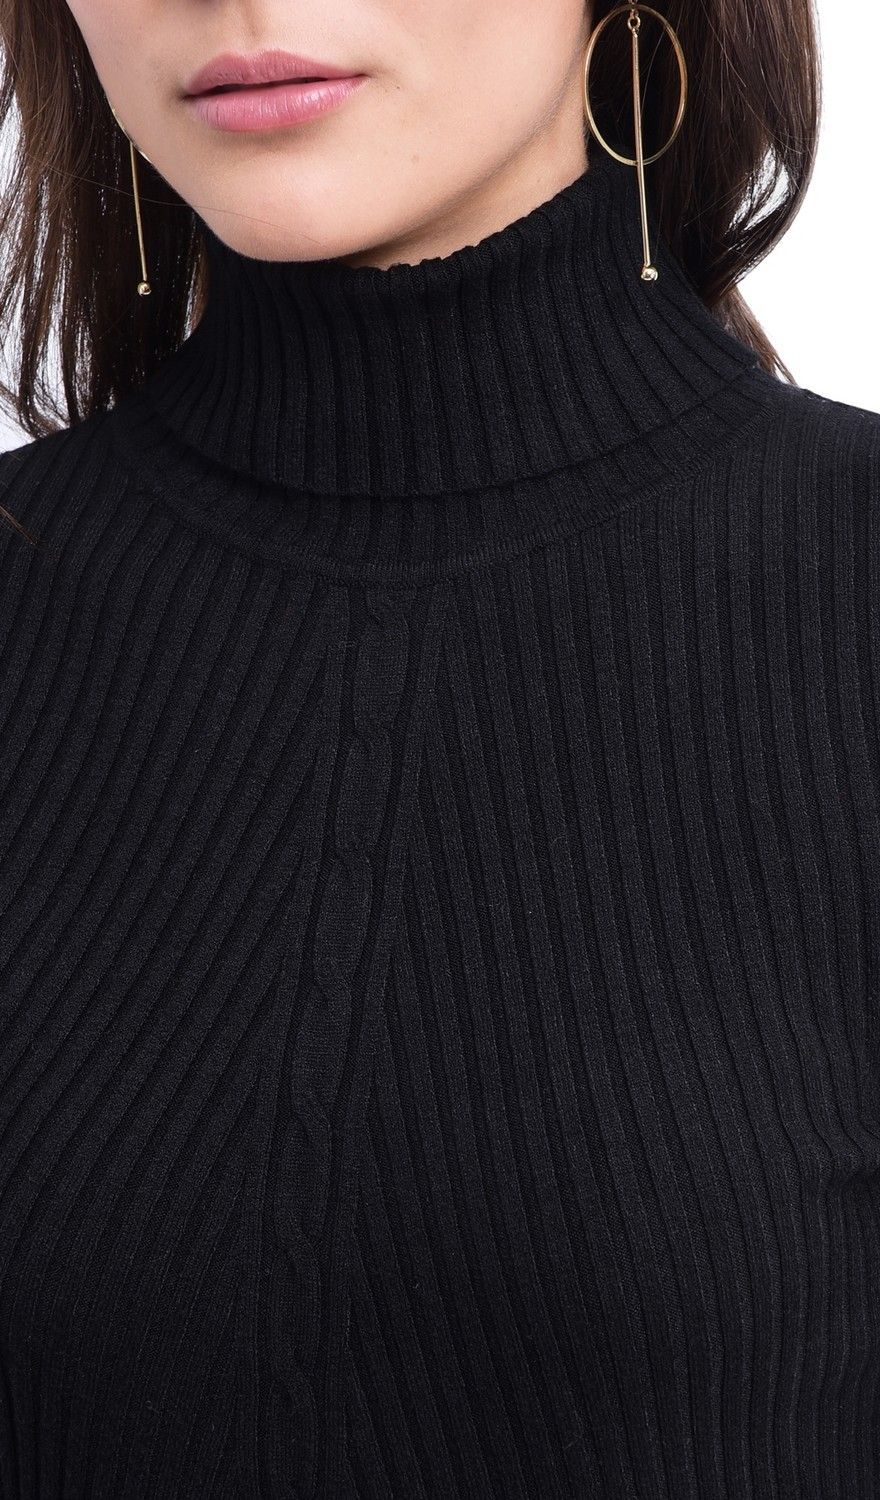 Assuili Turtleneck Twisted Yarn Front Sweater in Black